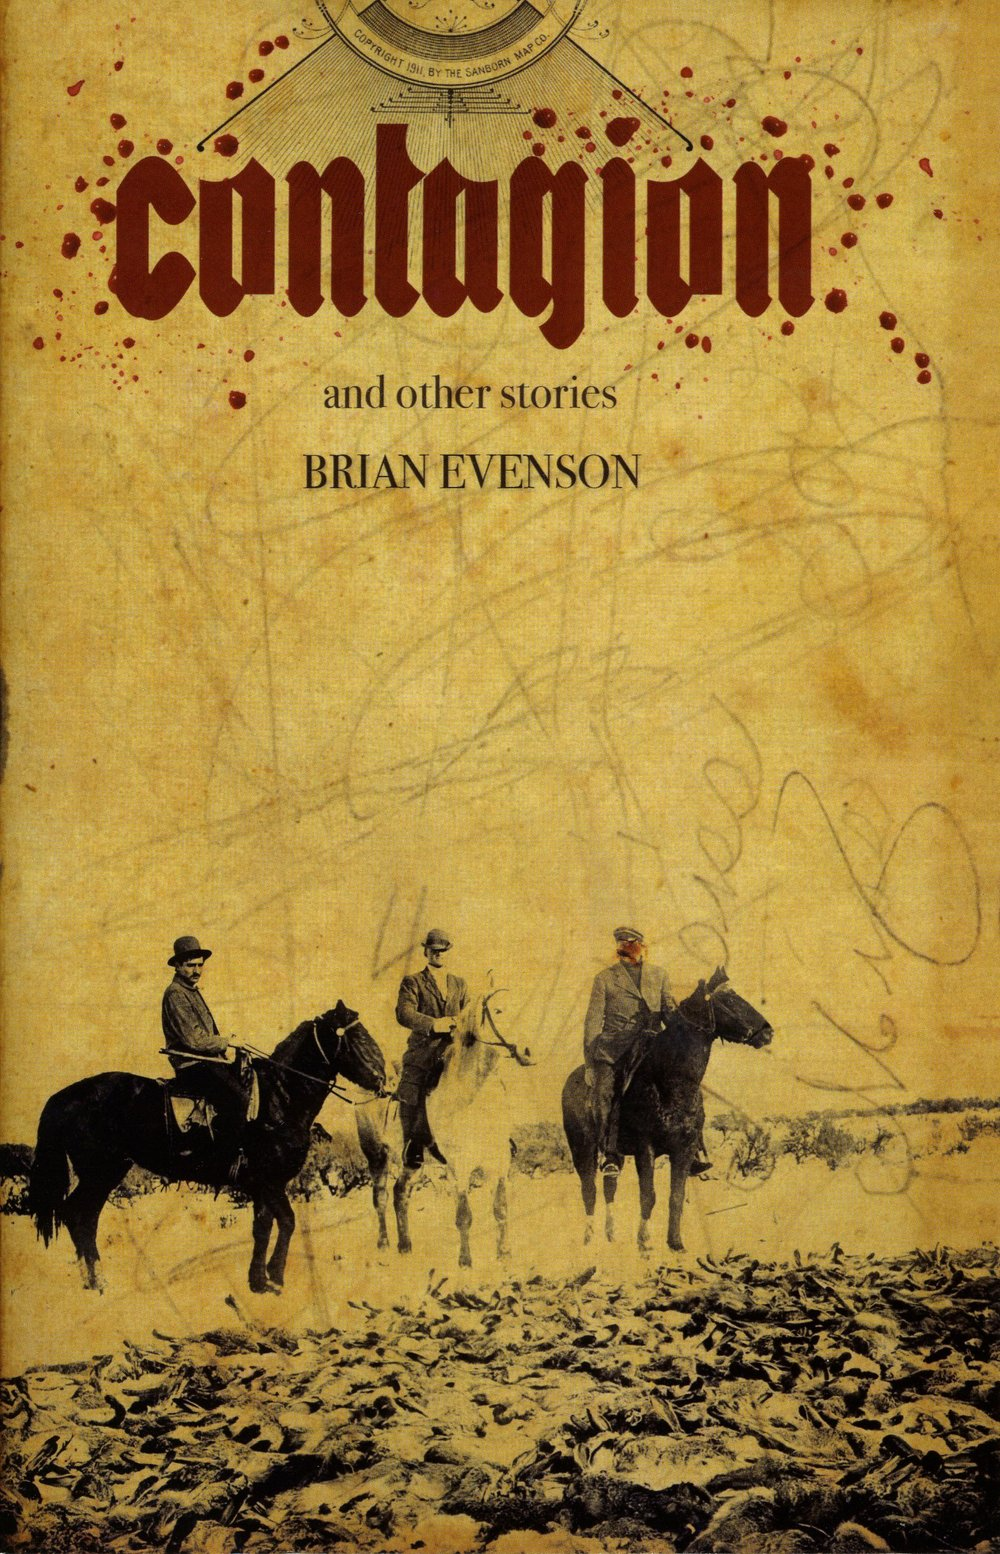 AP 5 CONTAGION by Brian Evenson